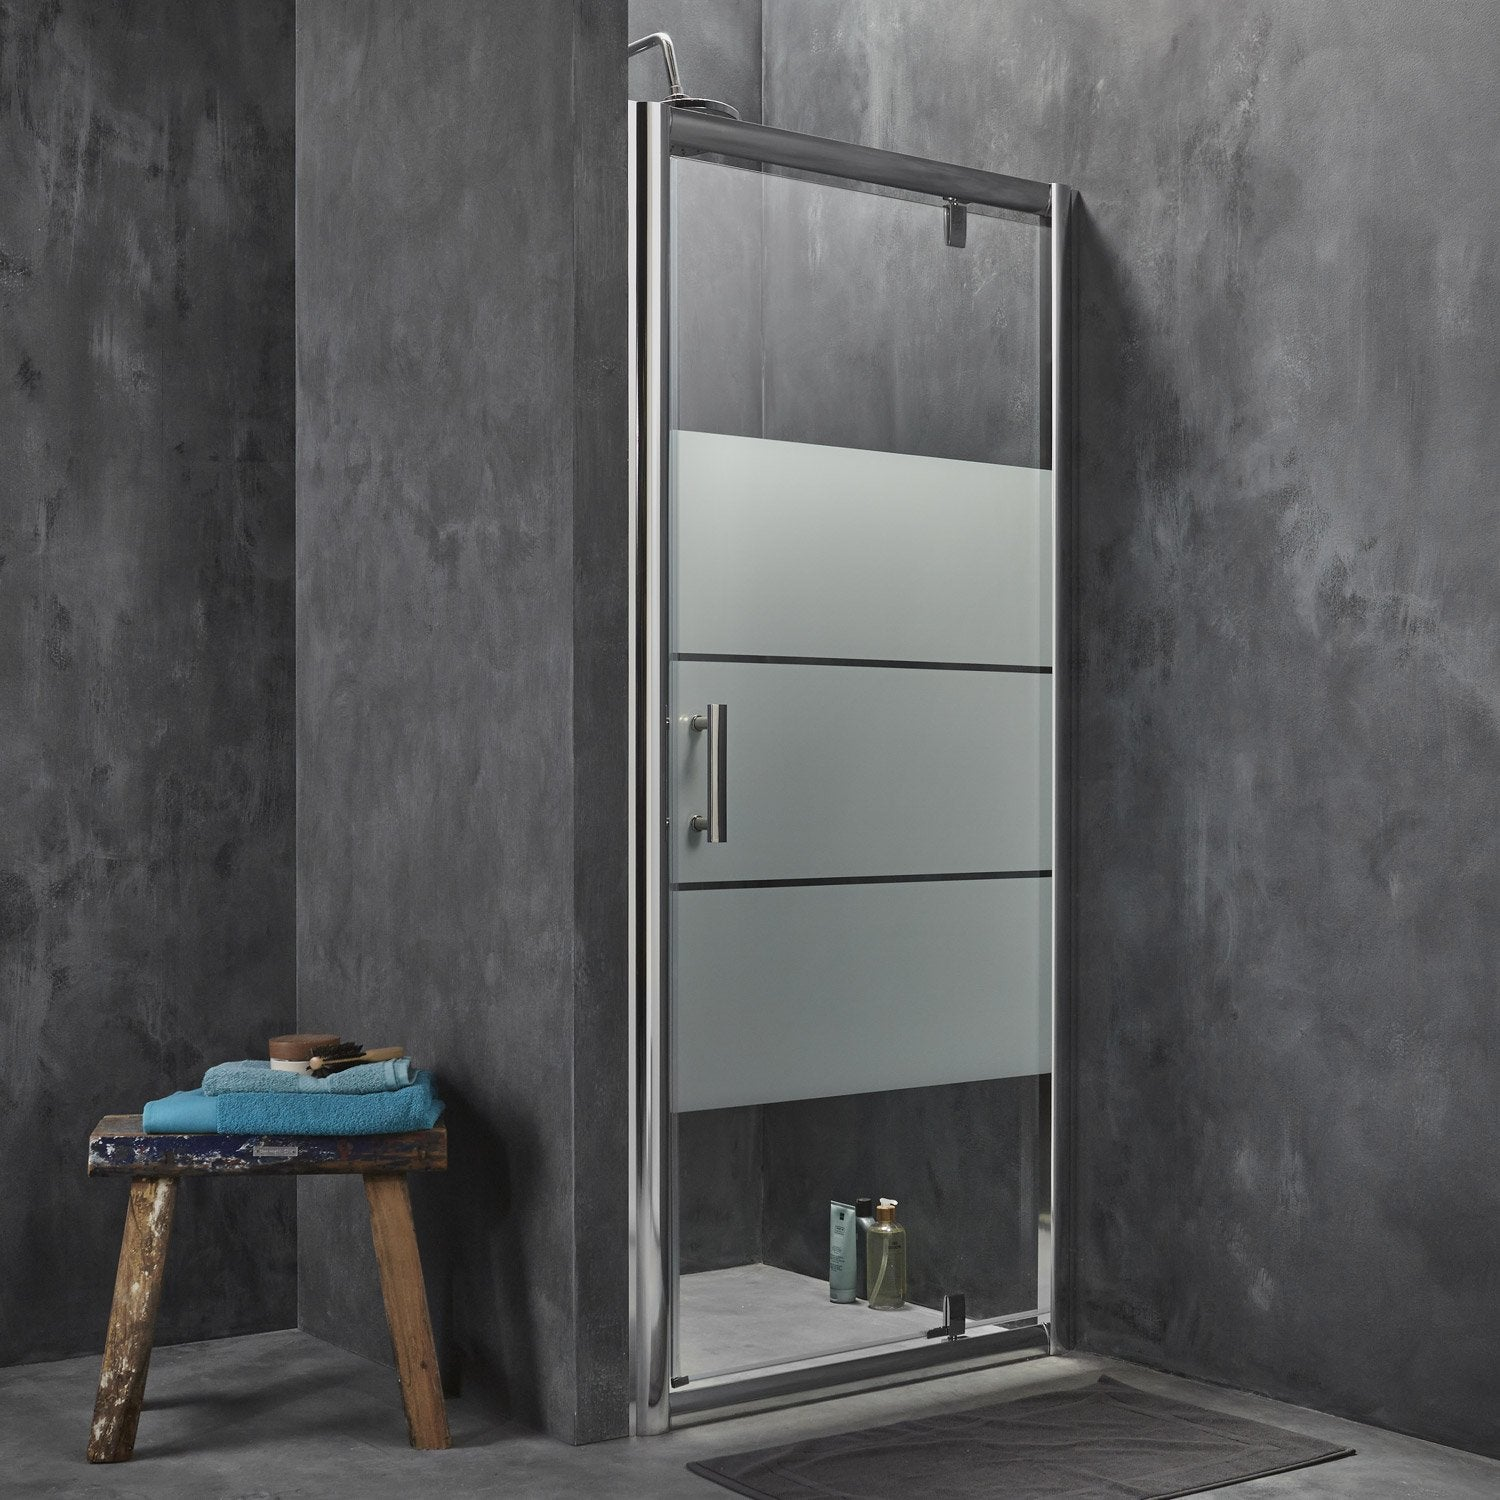 porte de douche pivotante 96 5 100 cm profil chrom optima2 leroy merlin. Black Bedroom Furniture Sets. Home Design Ideas